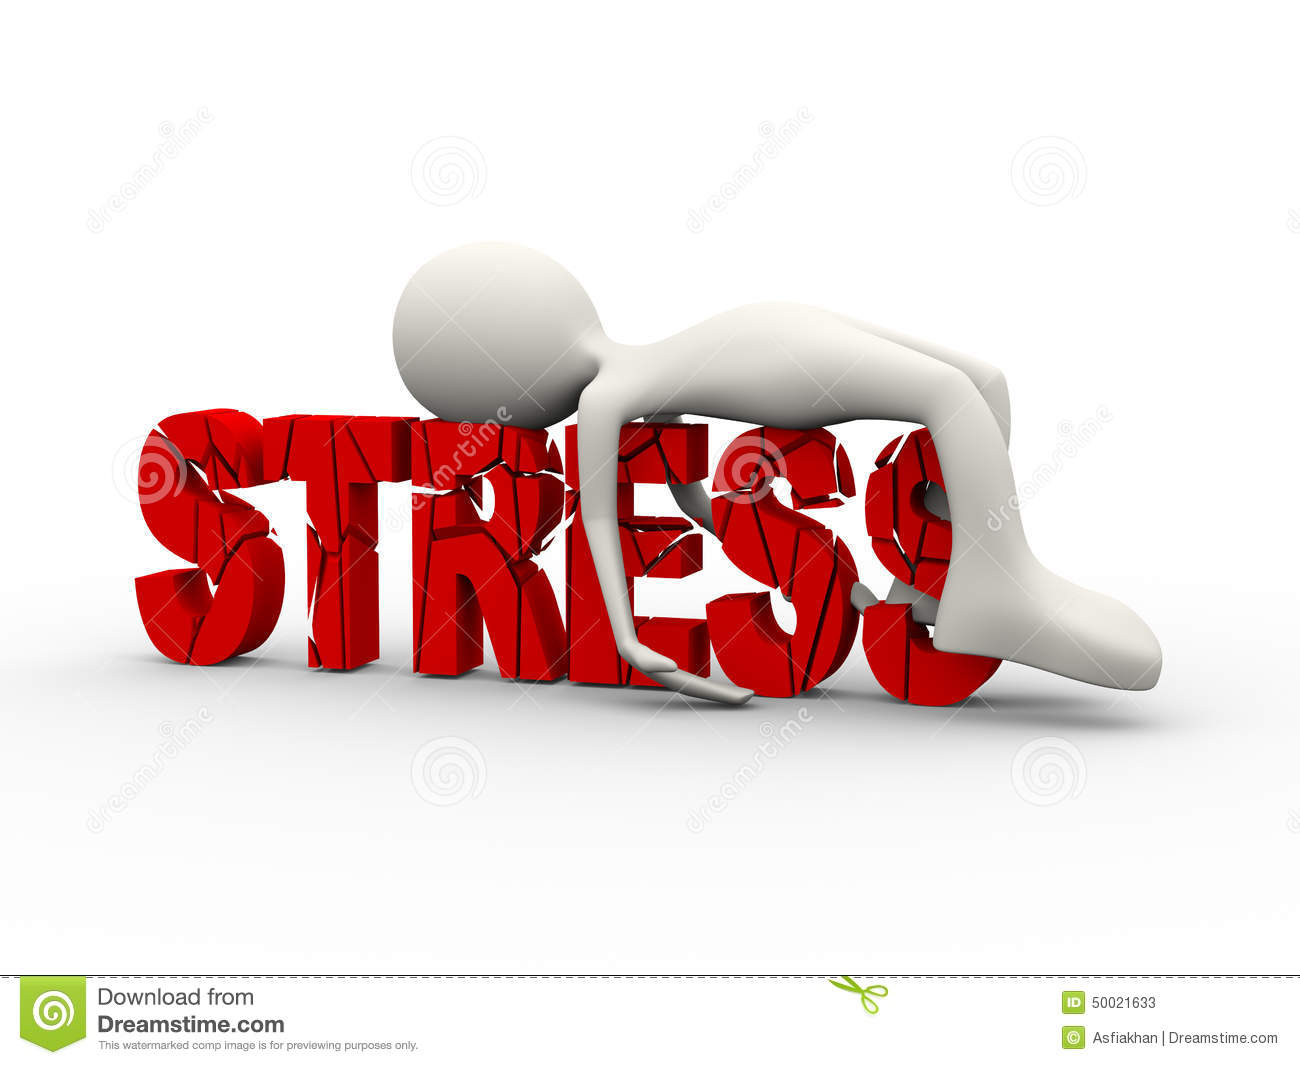 d-man-lying-cracked-word-stress-illustration-frustrated-stressful-person-depressed-human-person-character-white-people-50021633.jpg